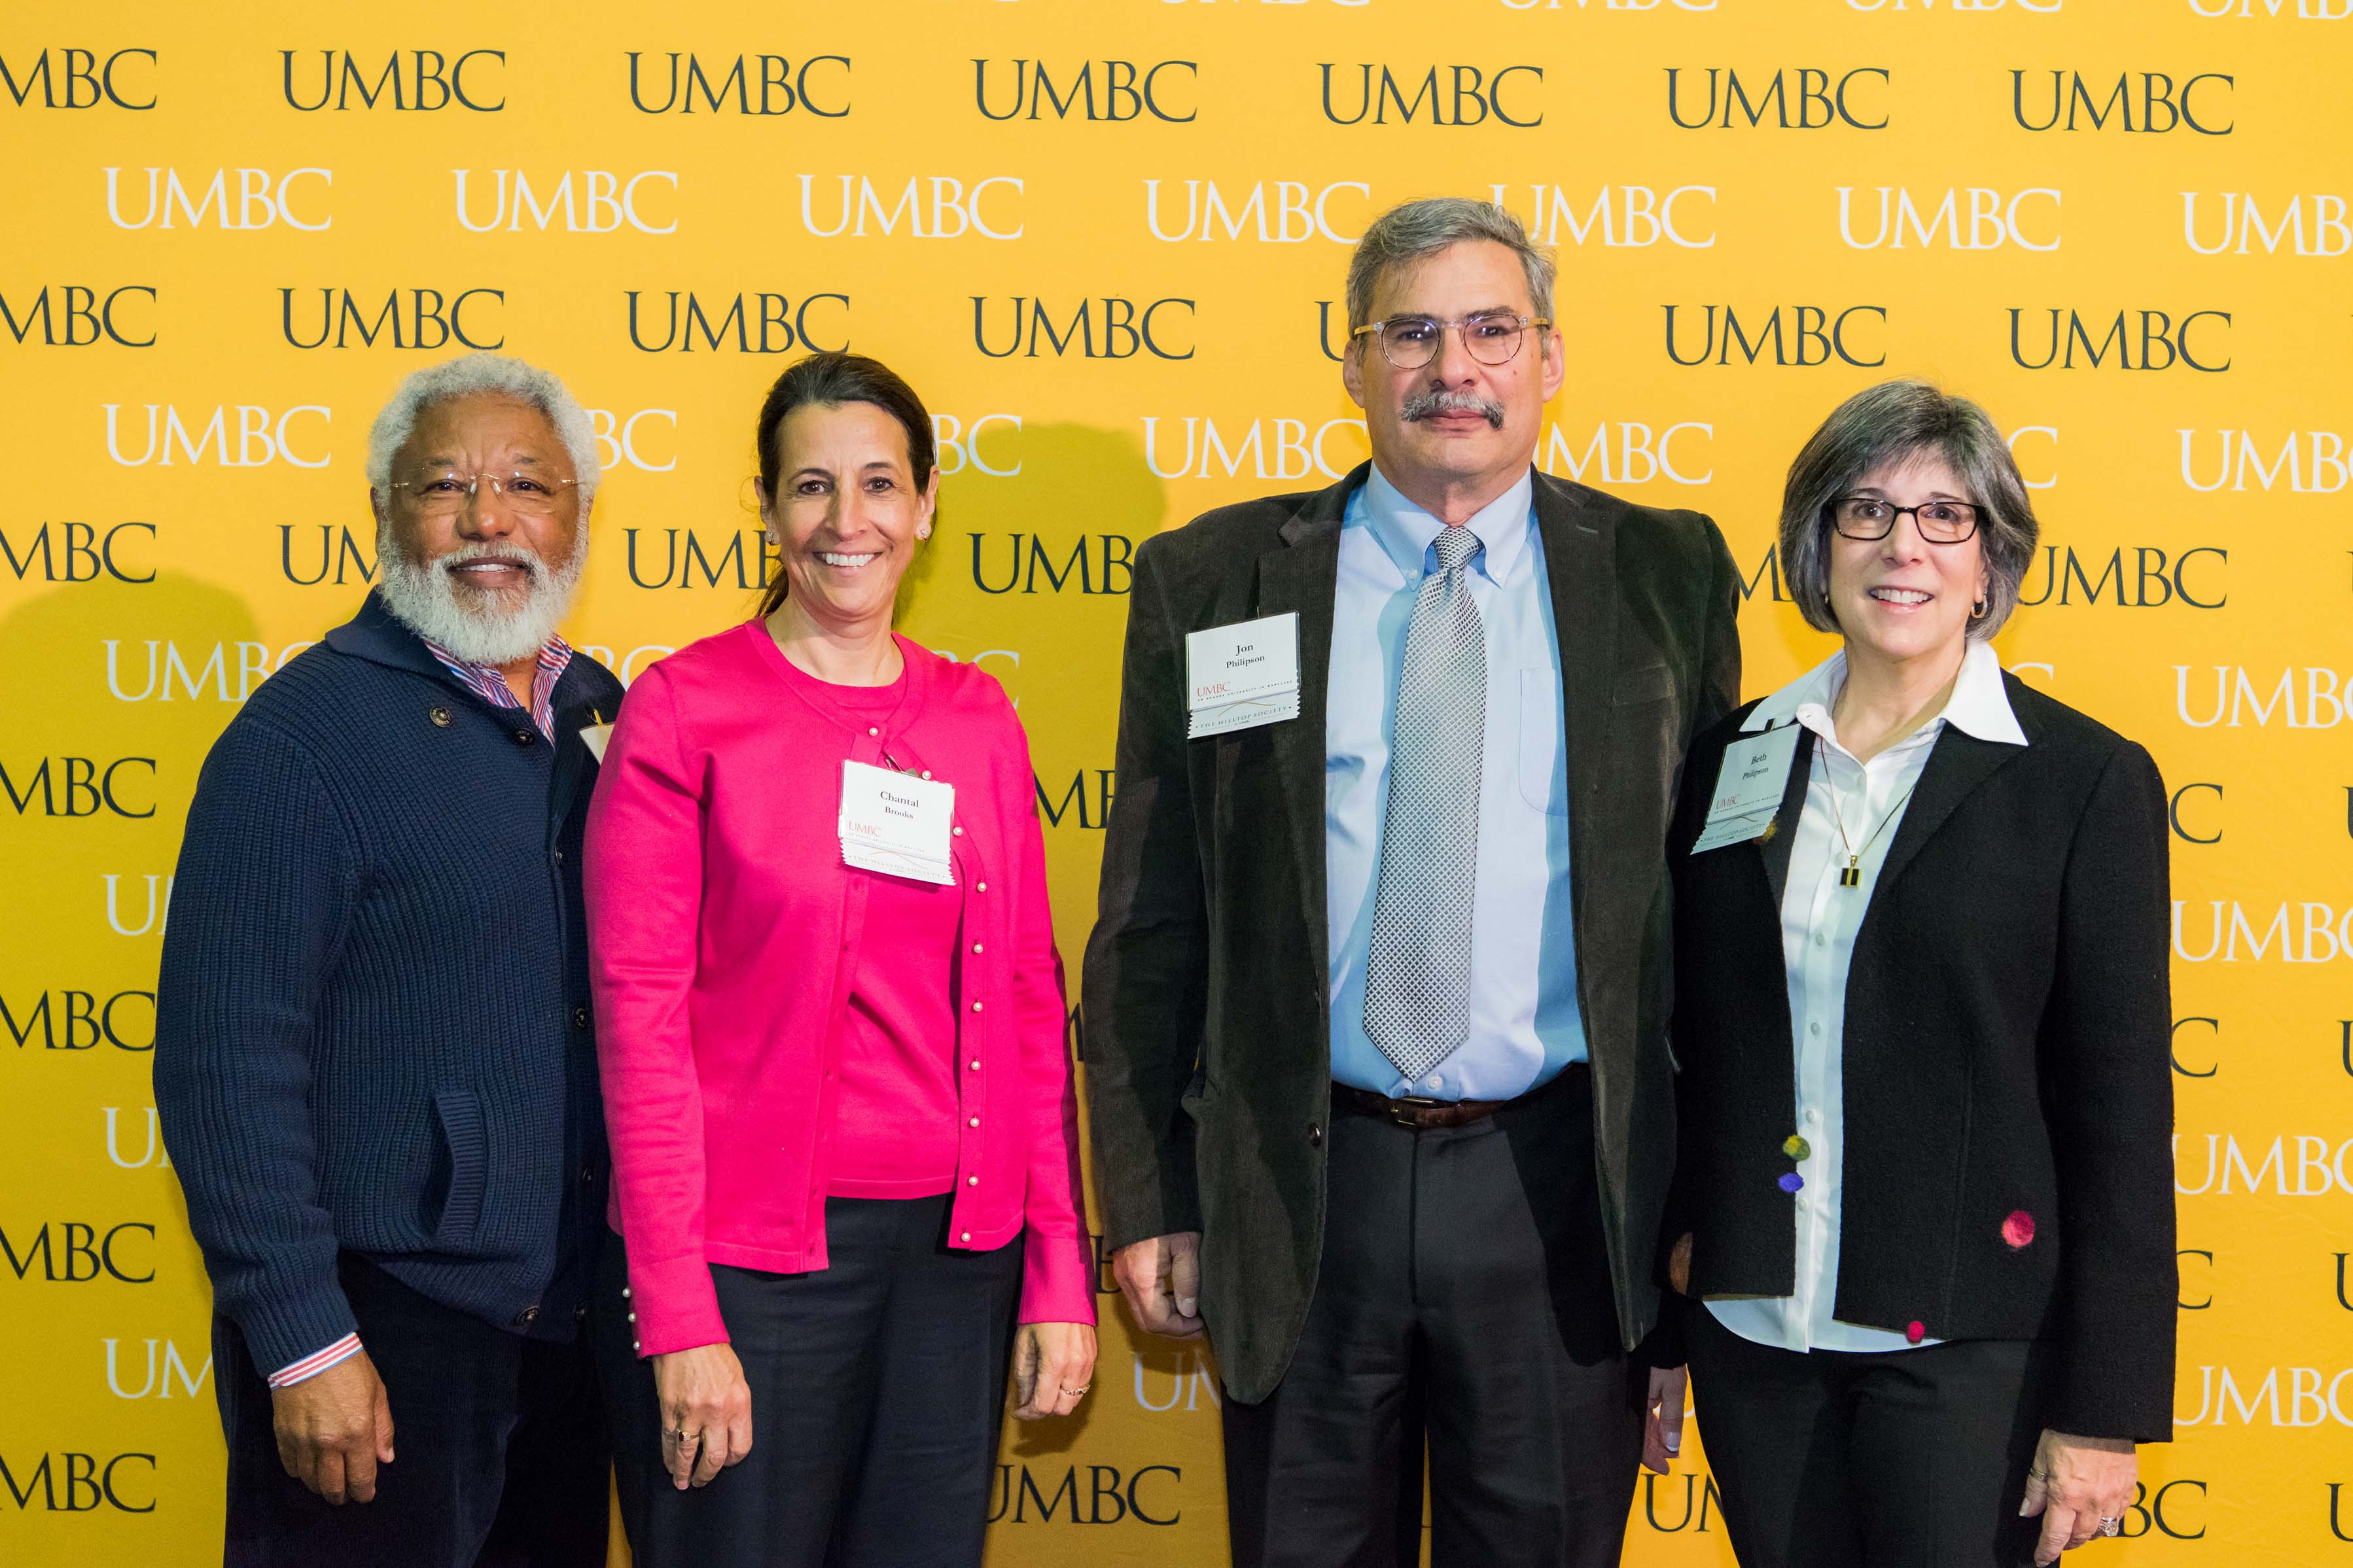 Two couples pose in front of the UMBC wall at the scholarship luncheon